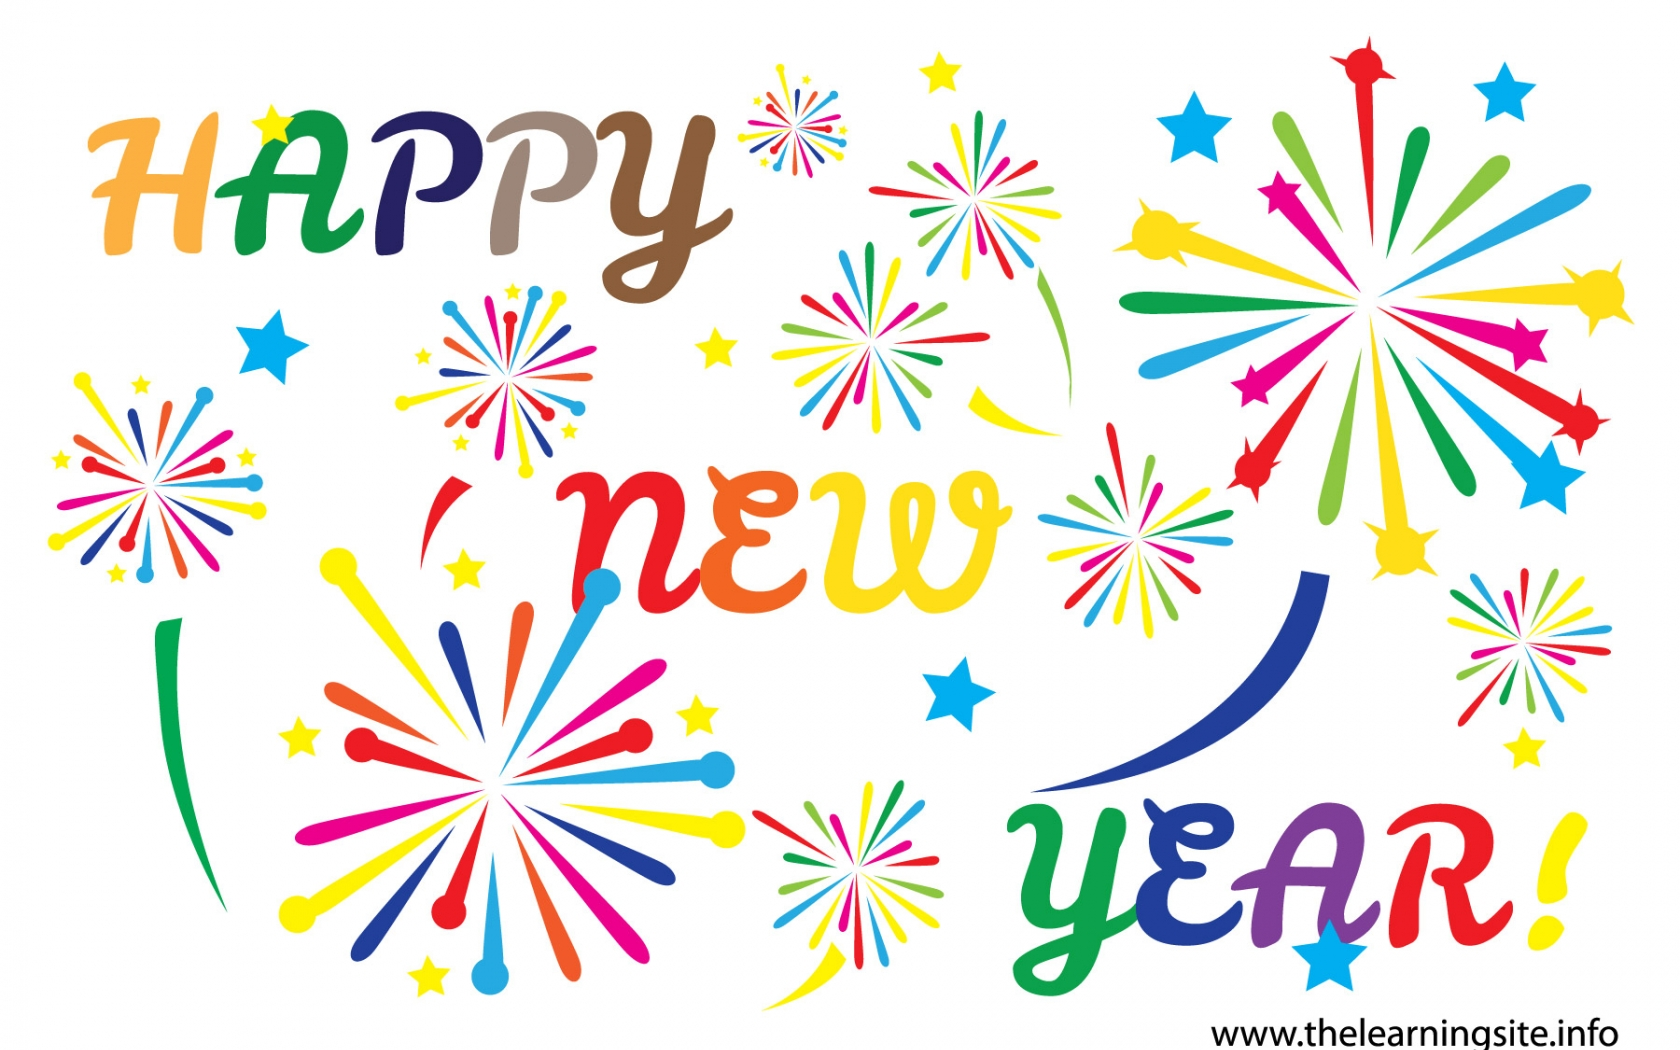 Free download Happy New Year ClipArt For 2015 [1800x1200.